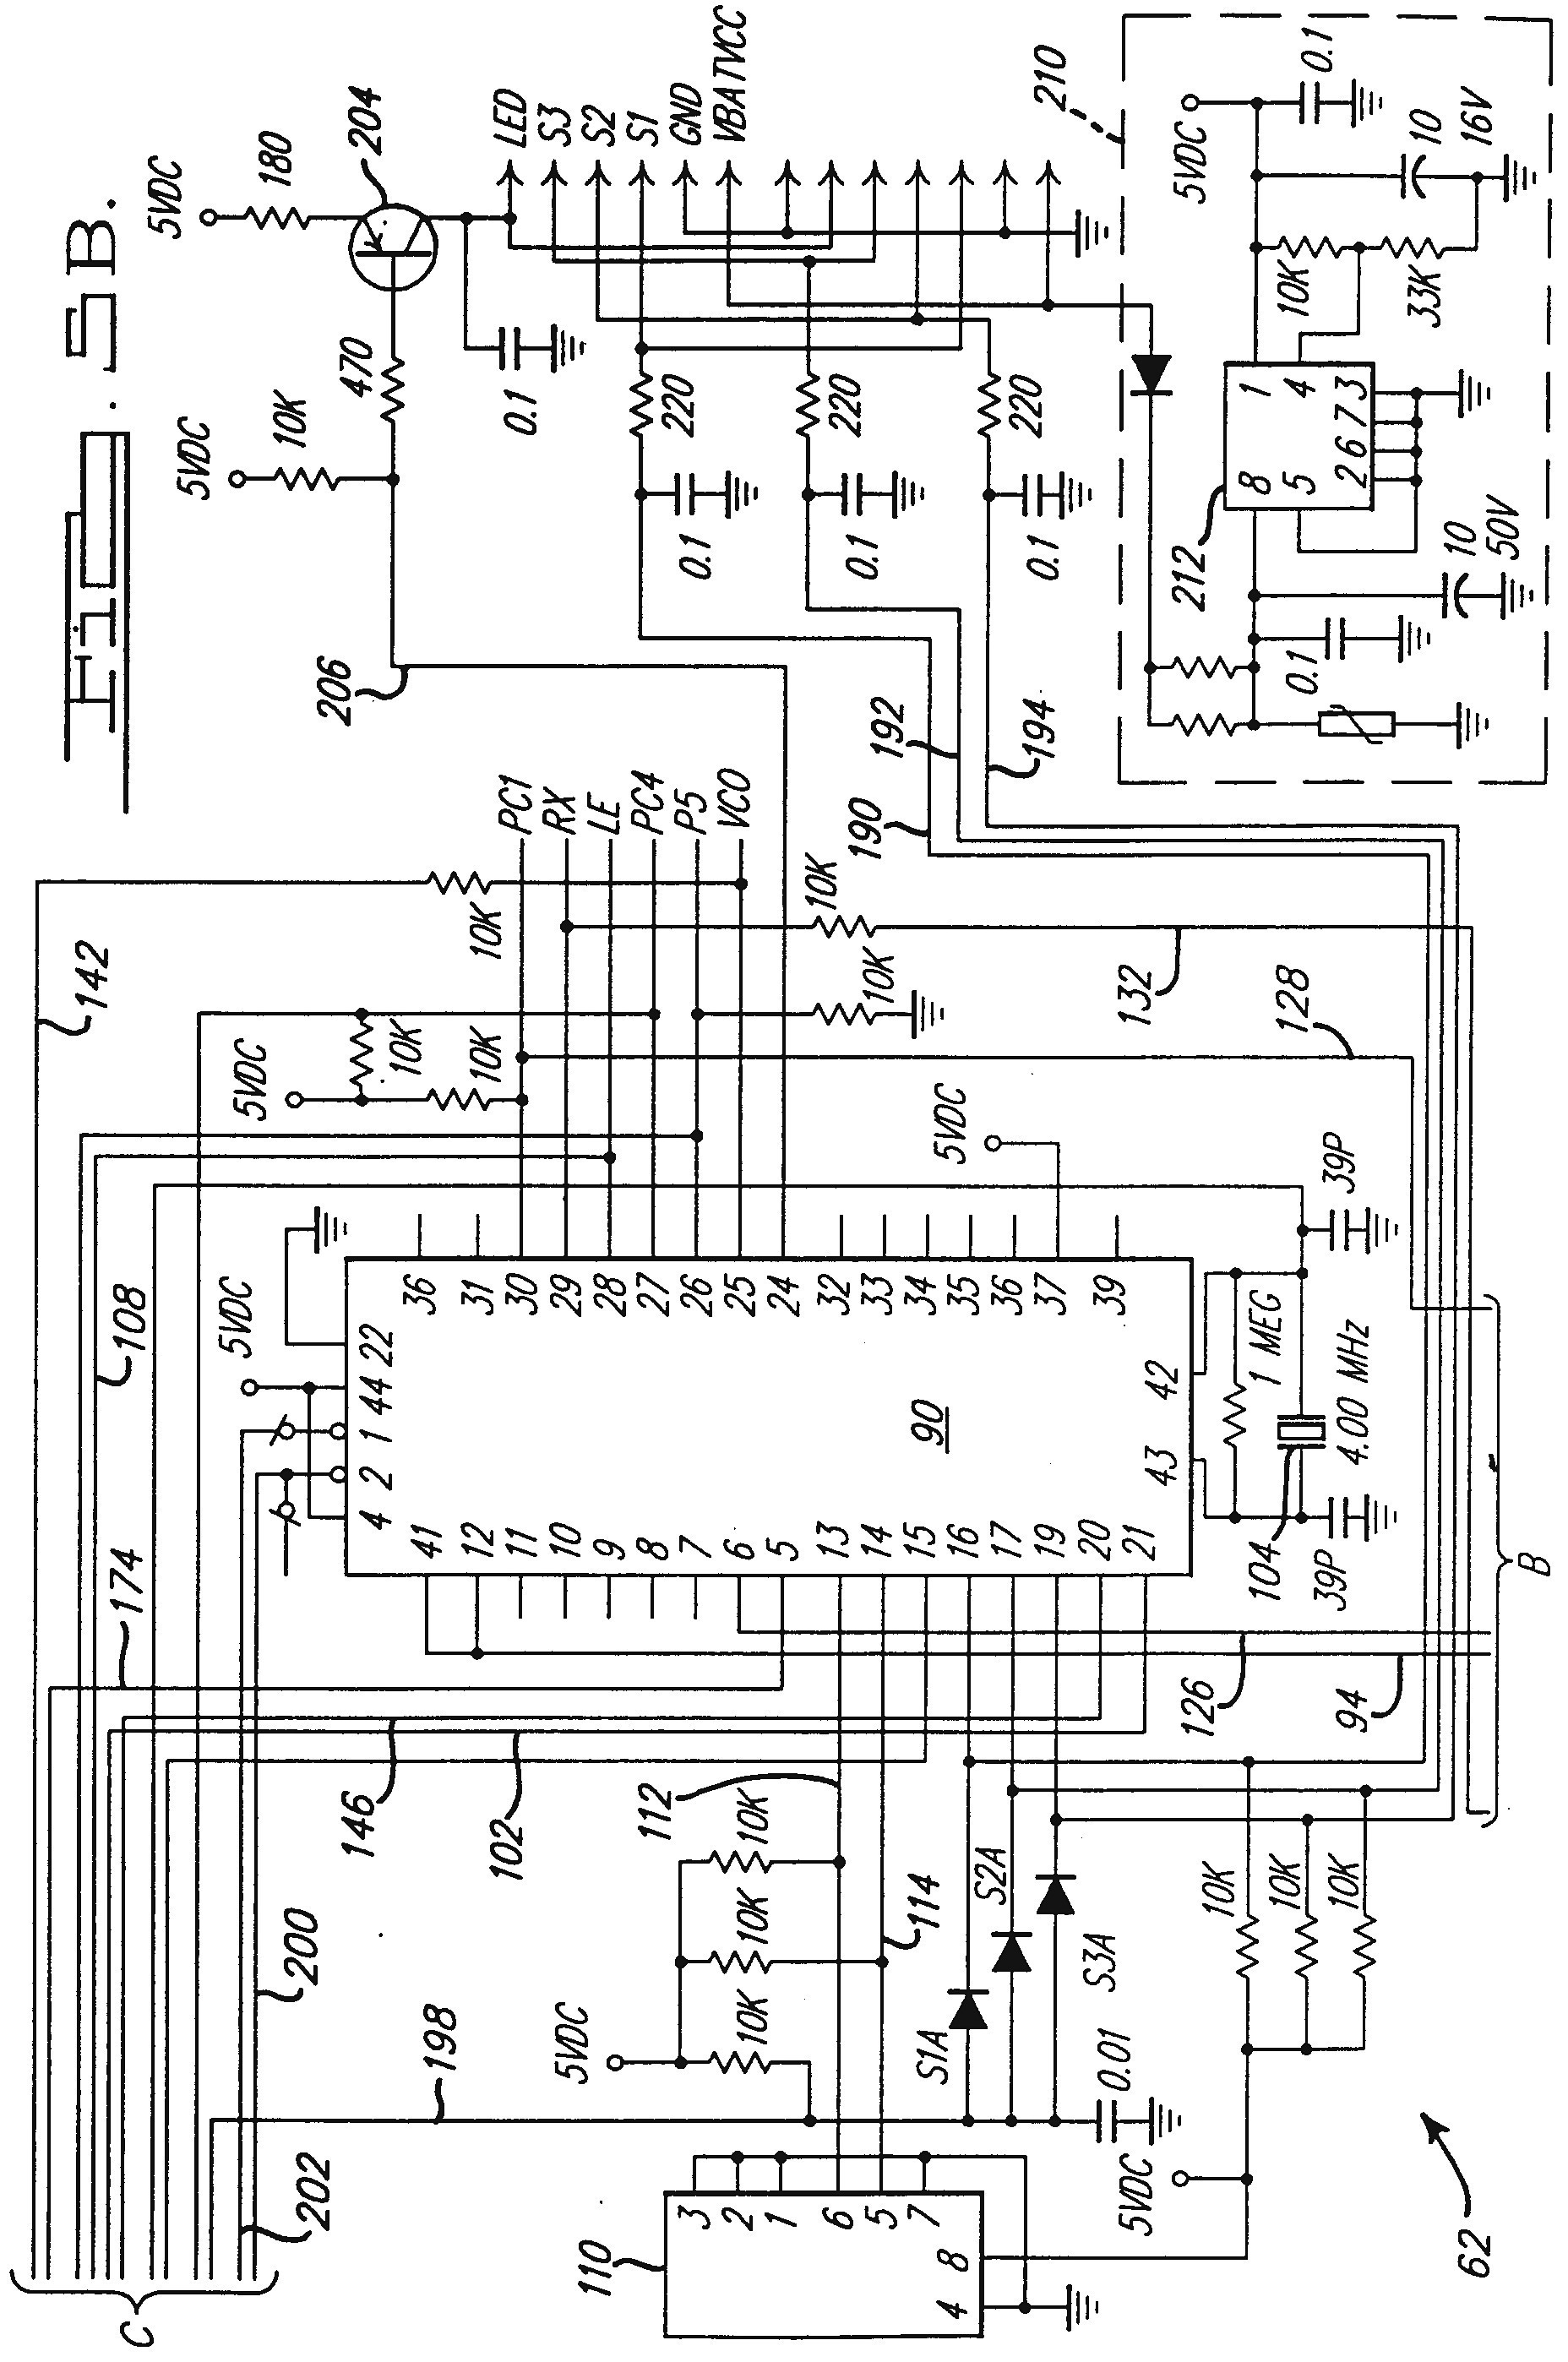 genie intellicode wiring diagrams 1 wiring diagram source Hercules 2000 Wiring Diagram